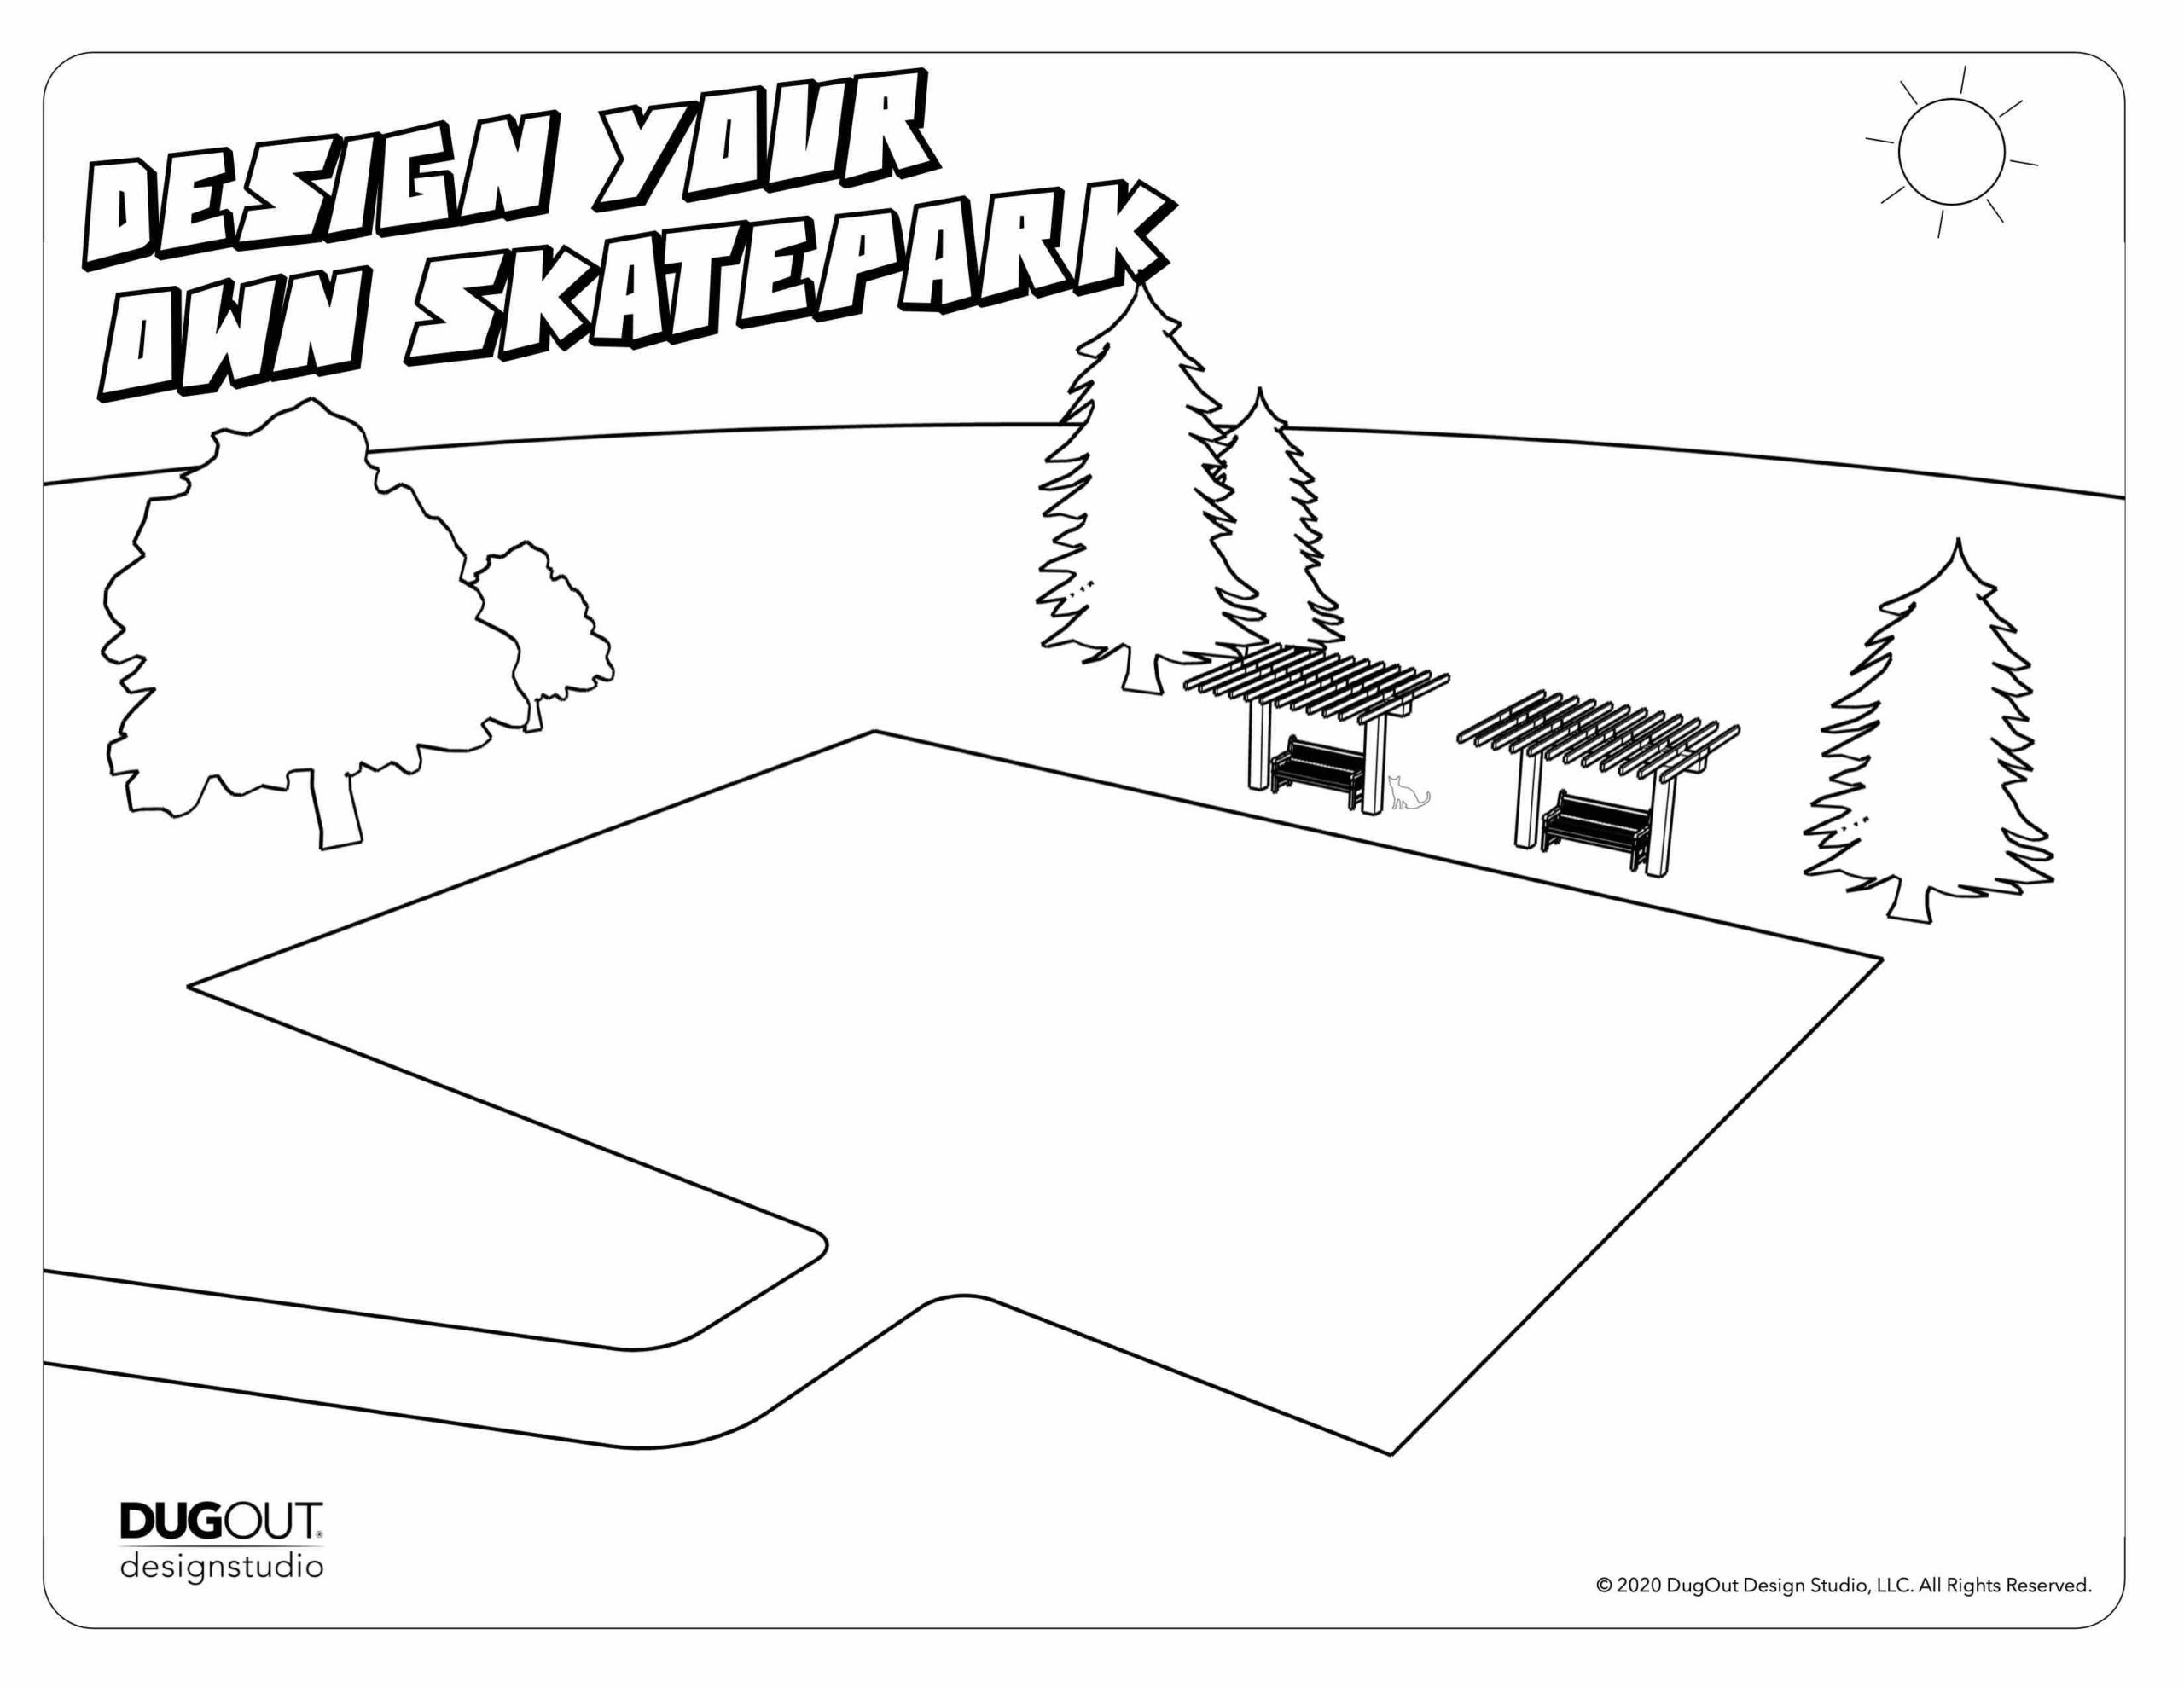 Design Your Own Skatepark page